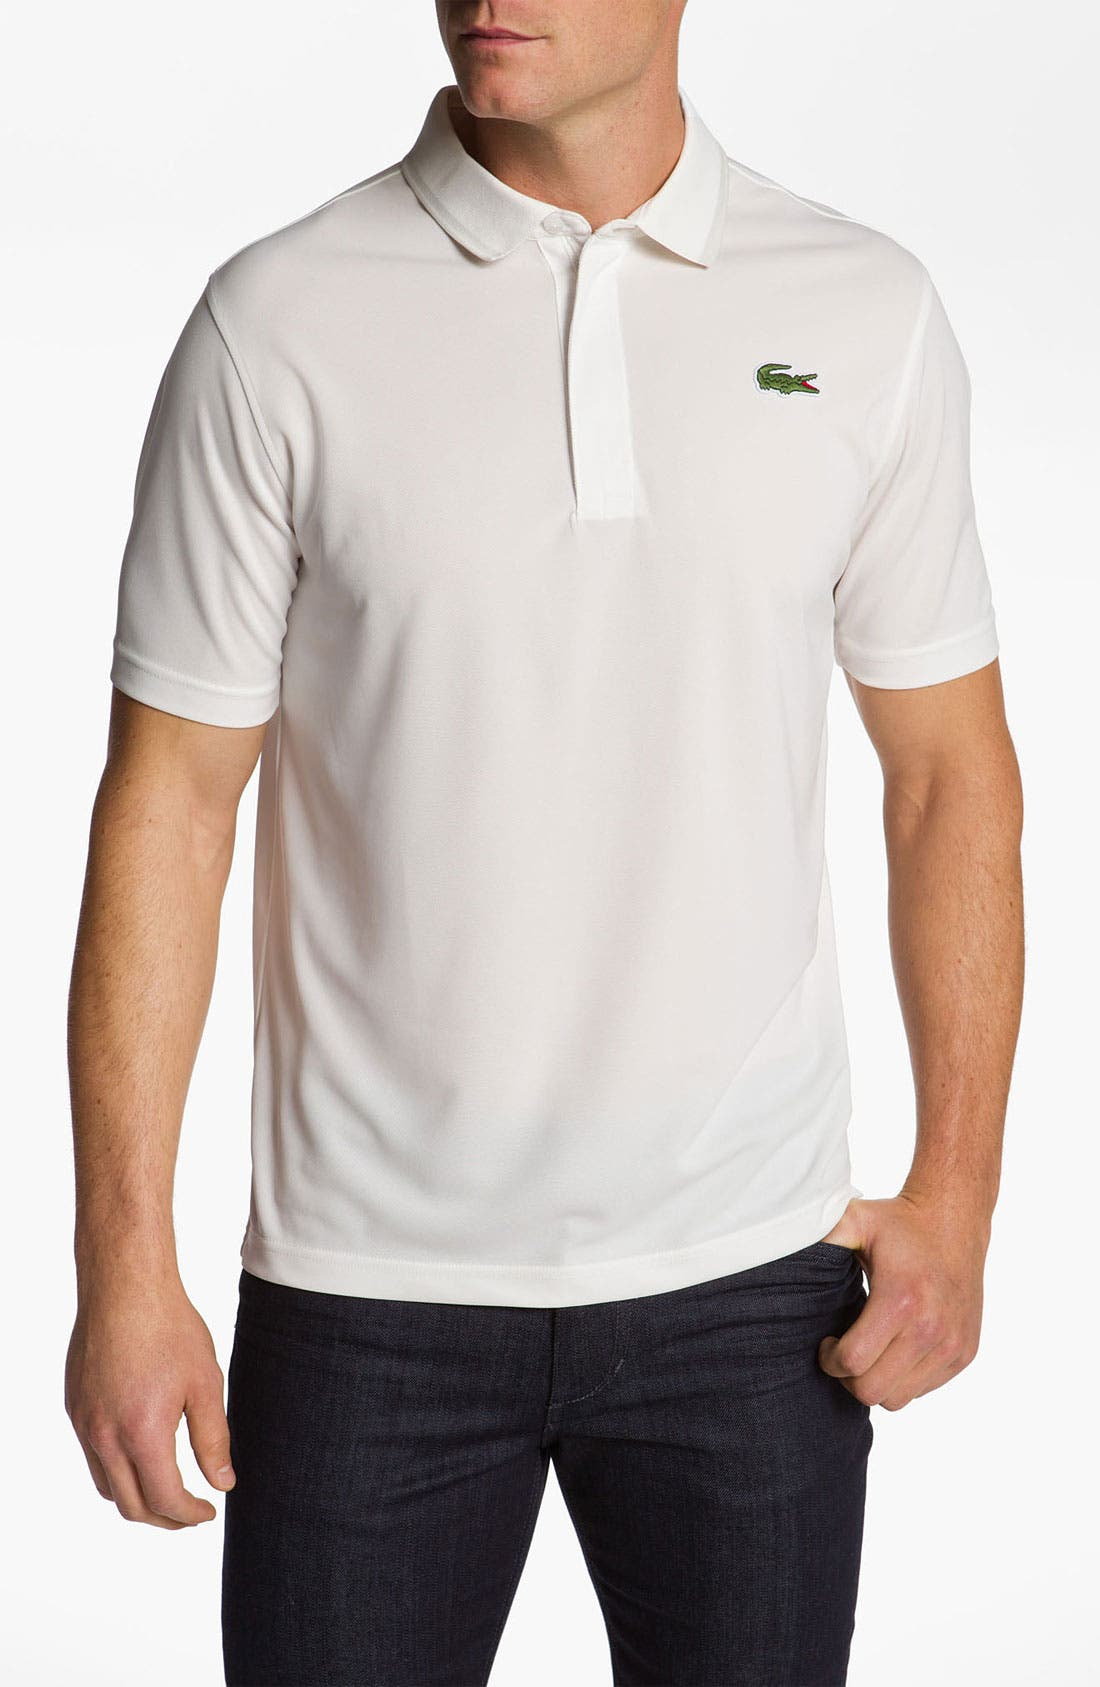 Alternate Image 1 Selected - Lacoste Tipped Pima Cotton Polo